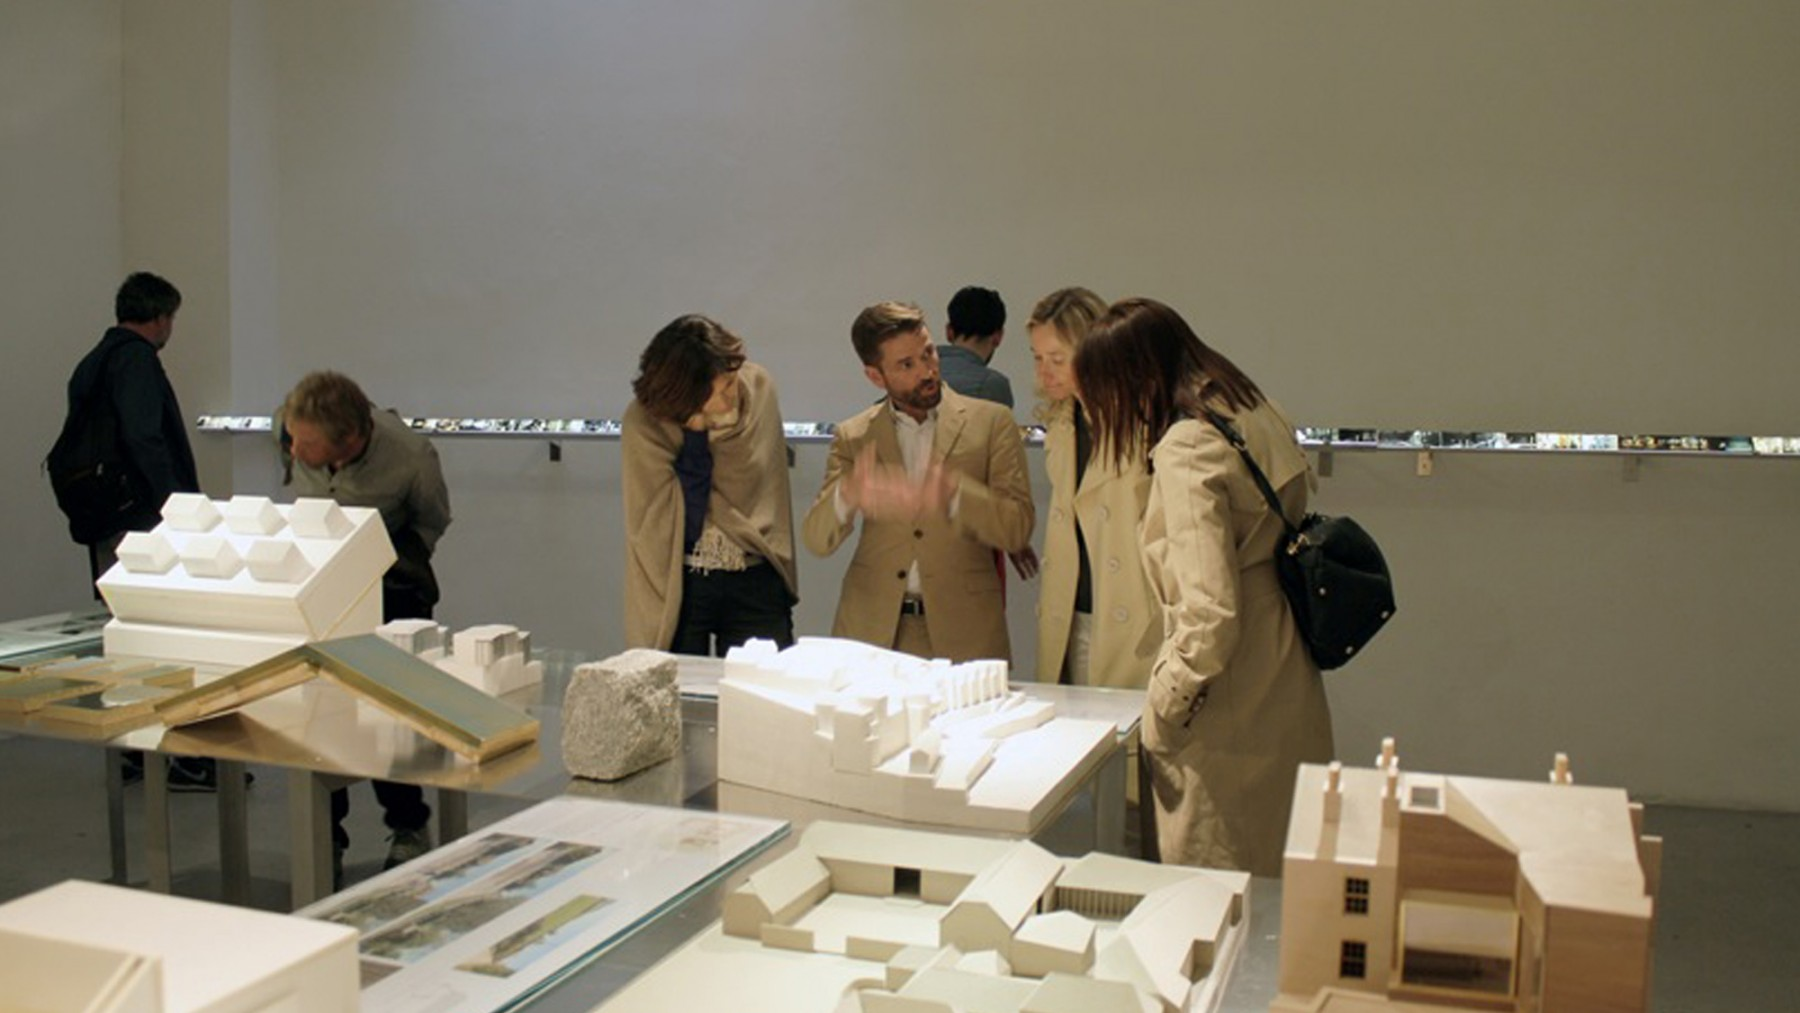 Jamie-Fobert-Architects- Exhibition-vernissage- Paris- Galerie-d'architecture- Jamie-explaining-models